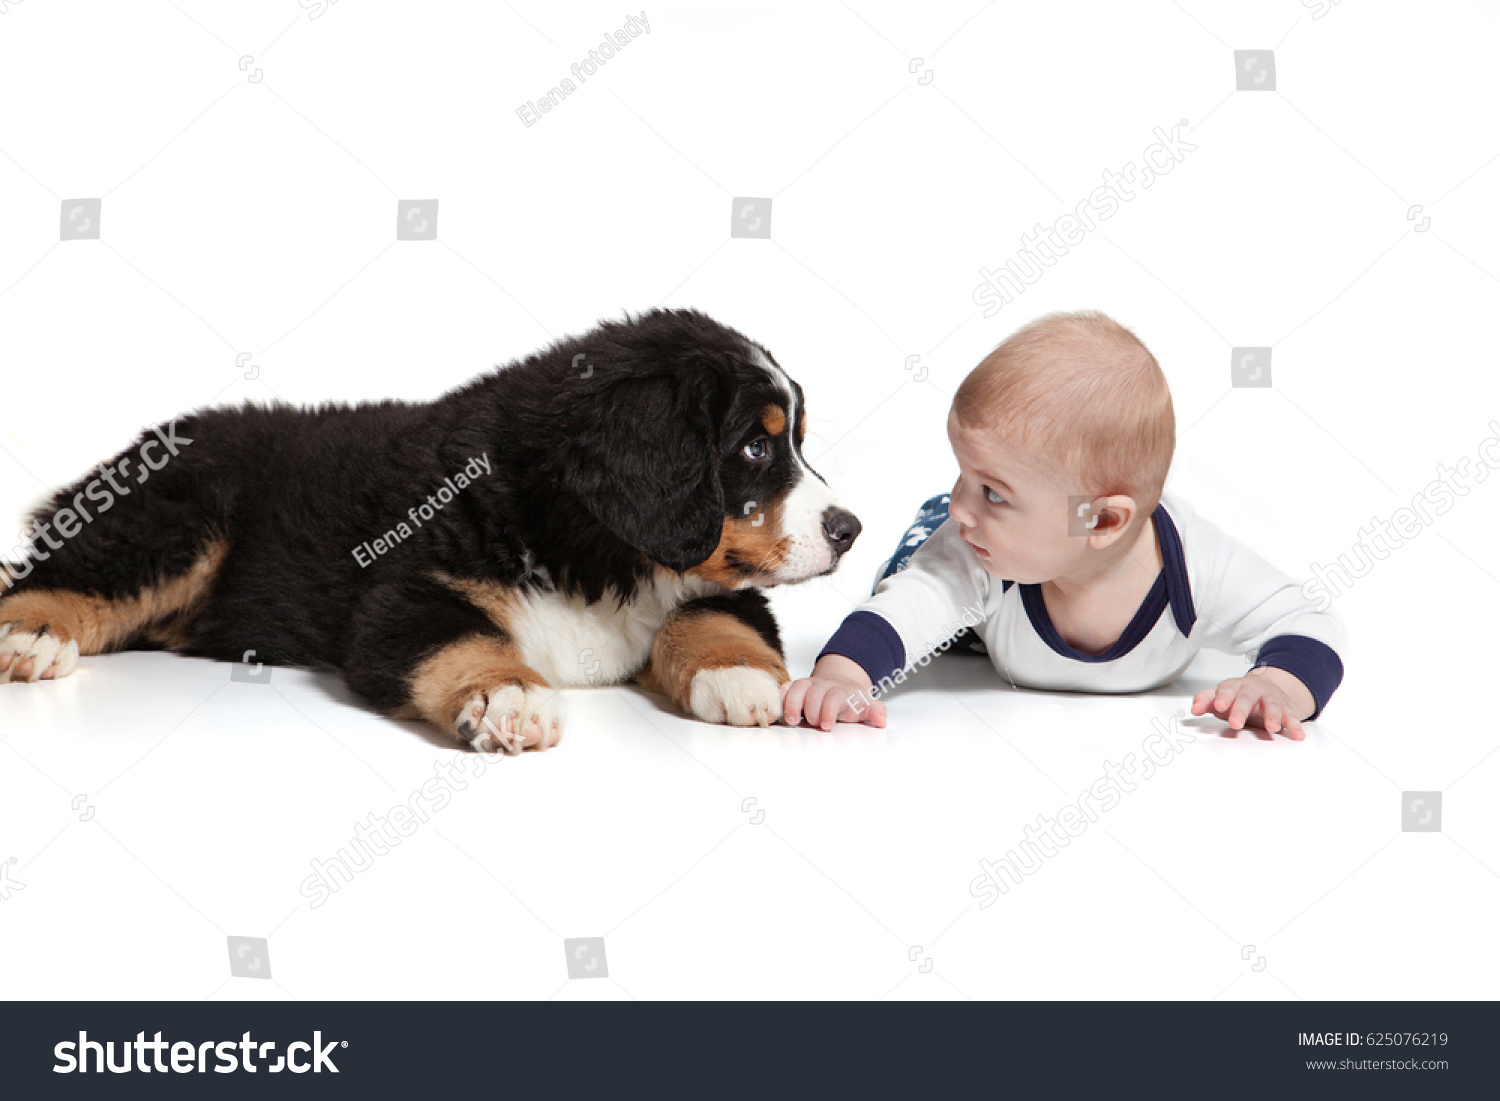 baby boy puppy bernese mountain dog stock photo (download now